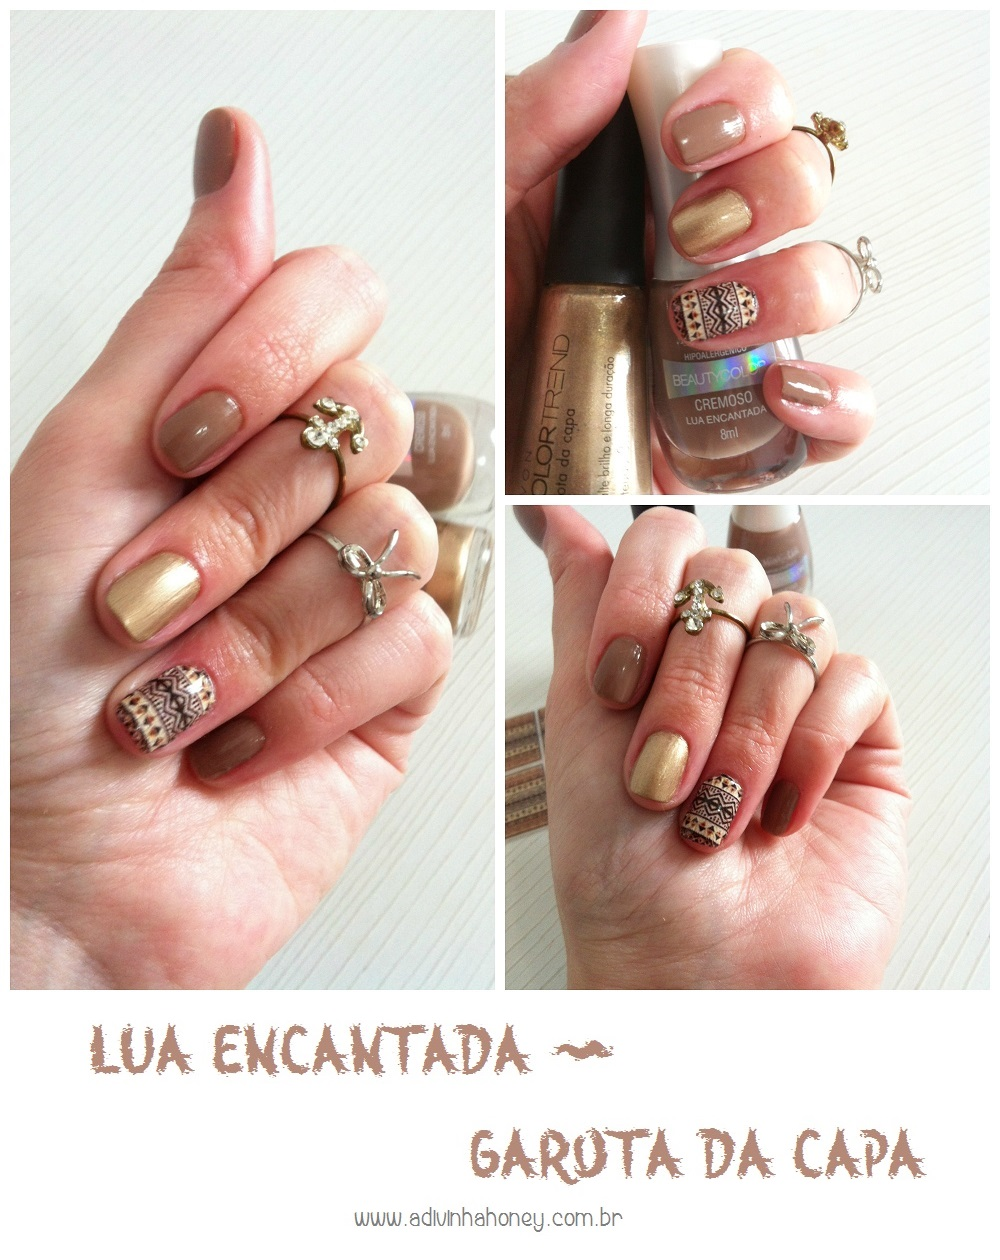 lua encantada beautycolor